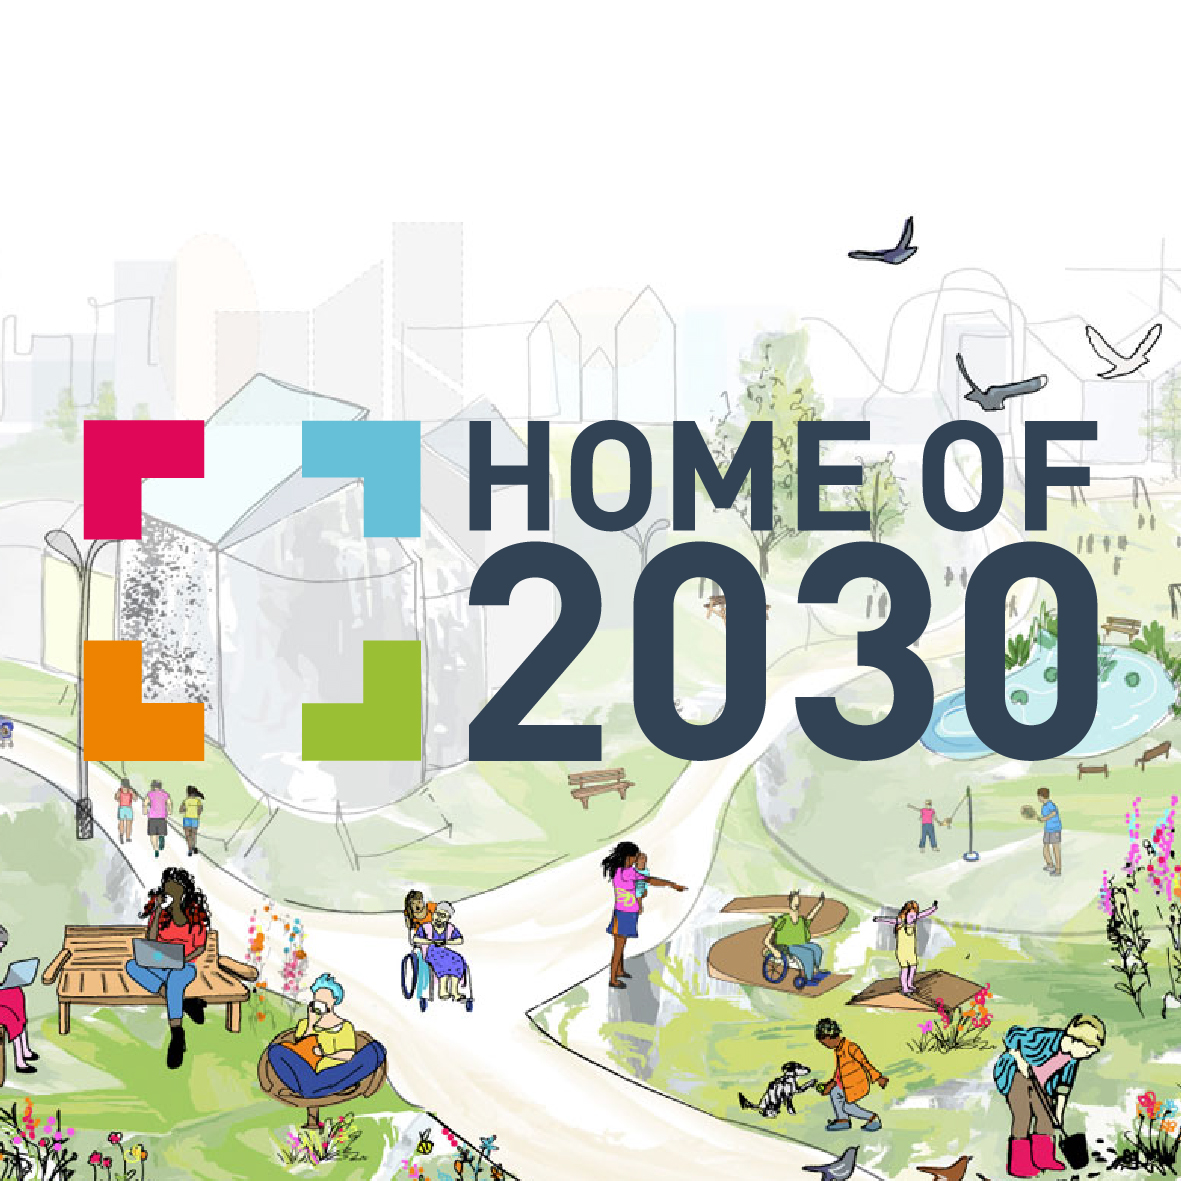 +Home and Connector Housing joint winners of Home Of 2030 design competition